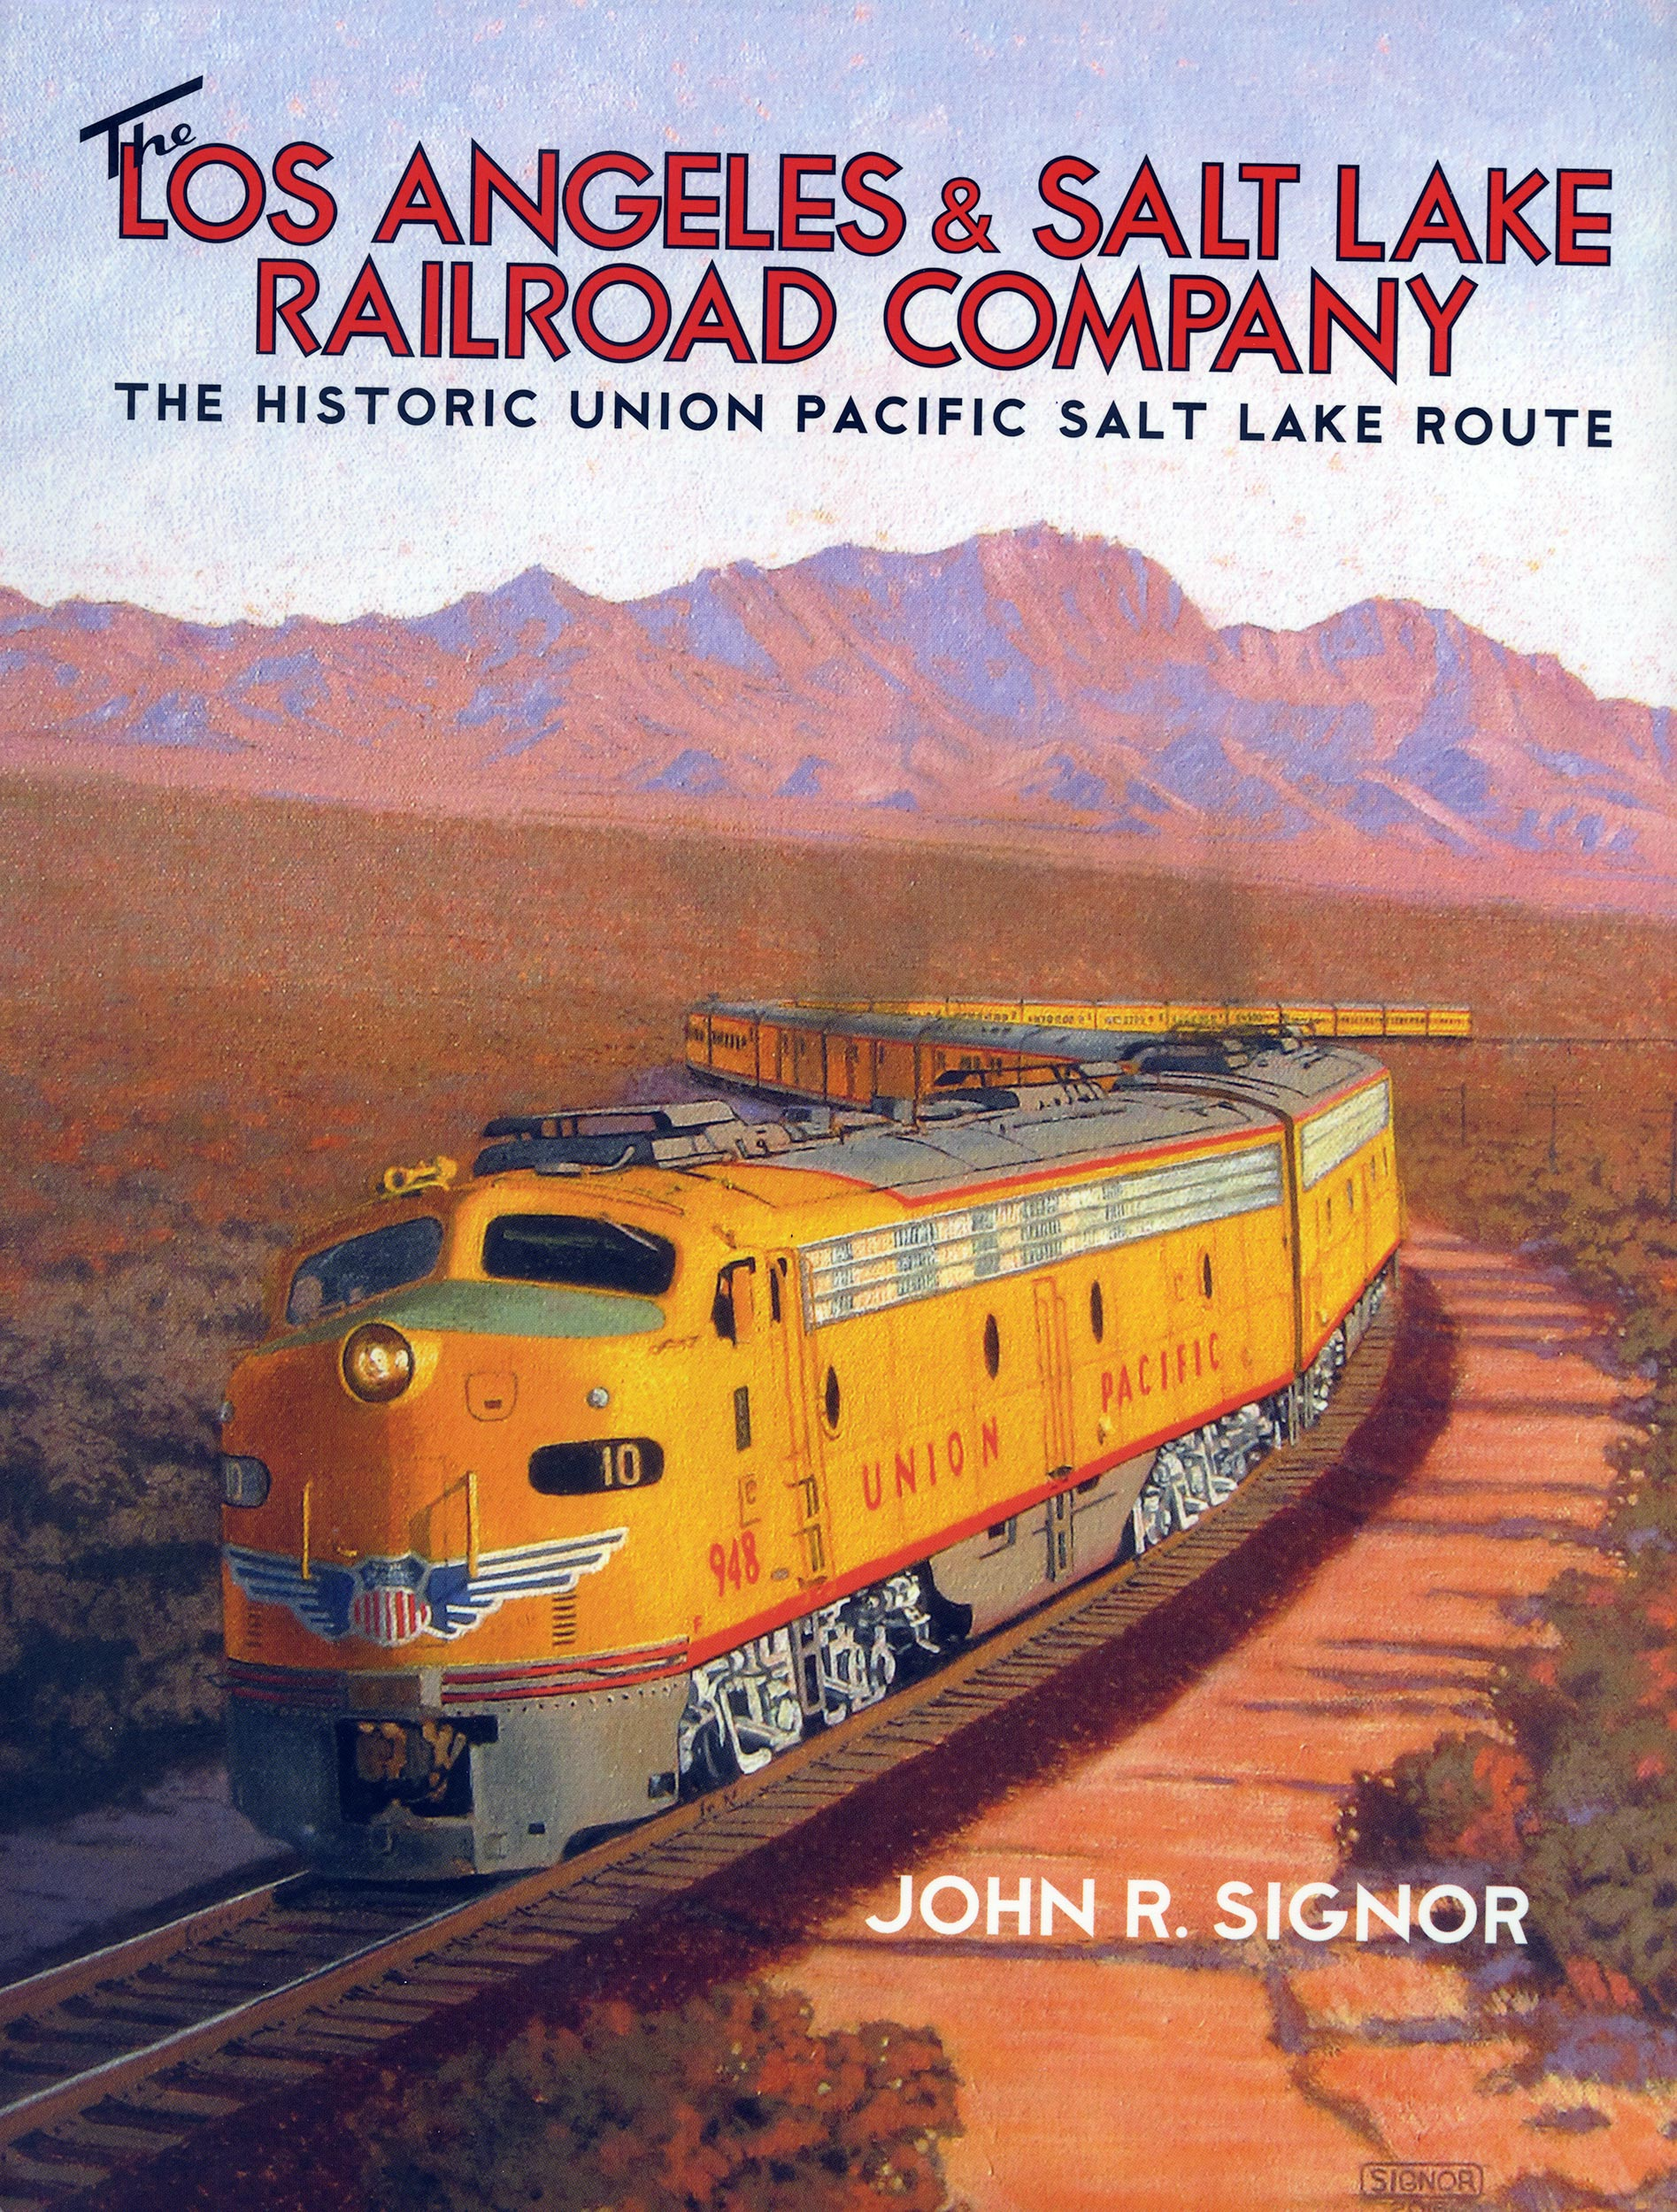 The Los Angeles and Salt Lake Railroad Company by John R. Signor